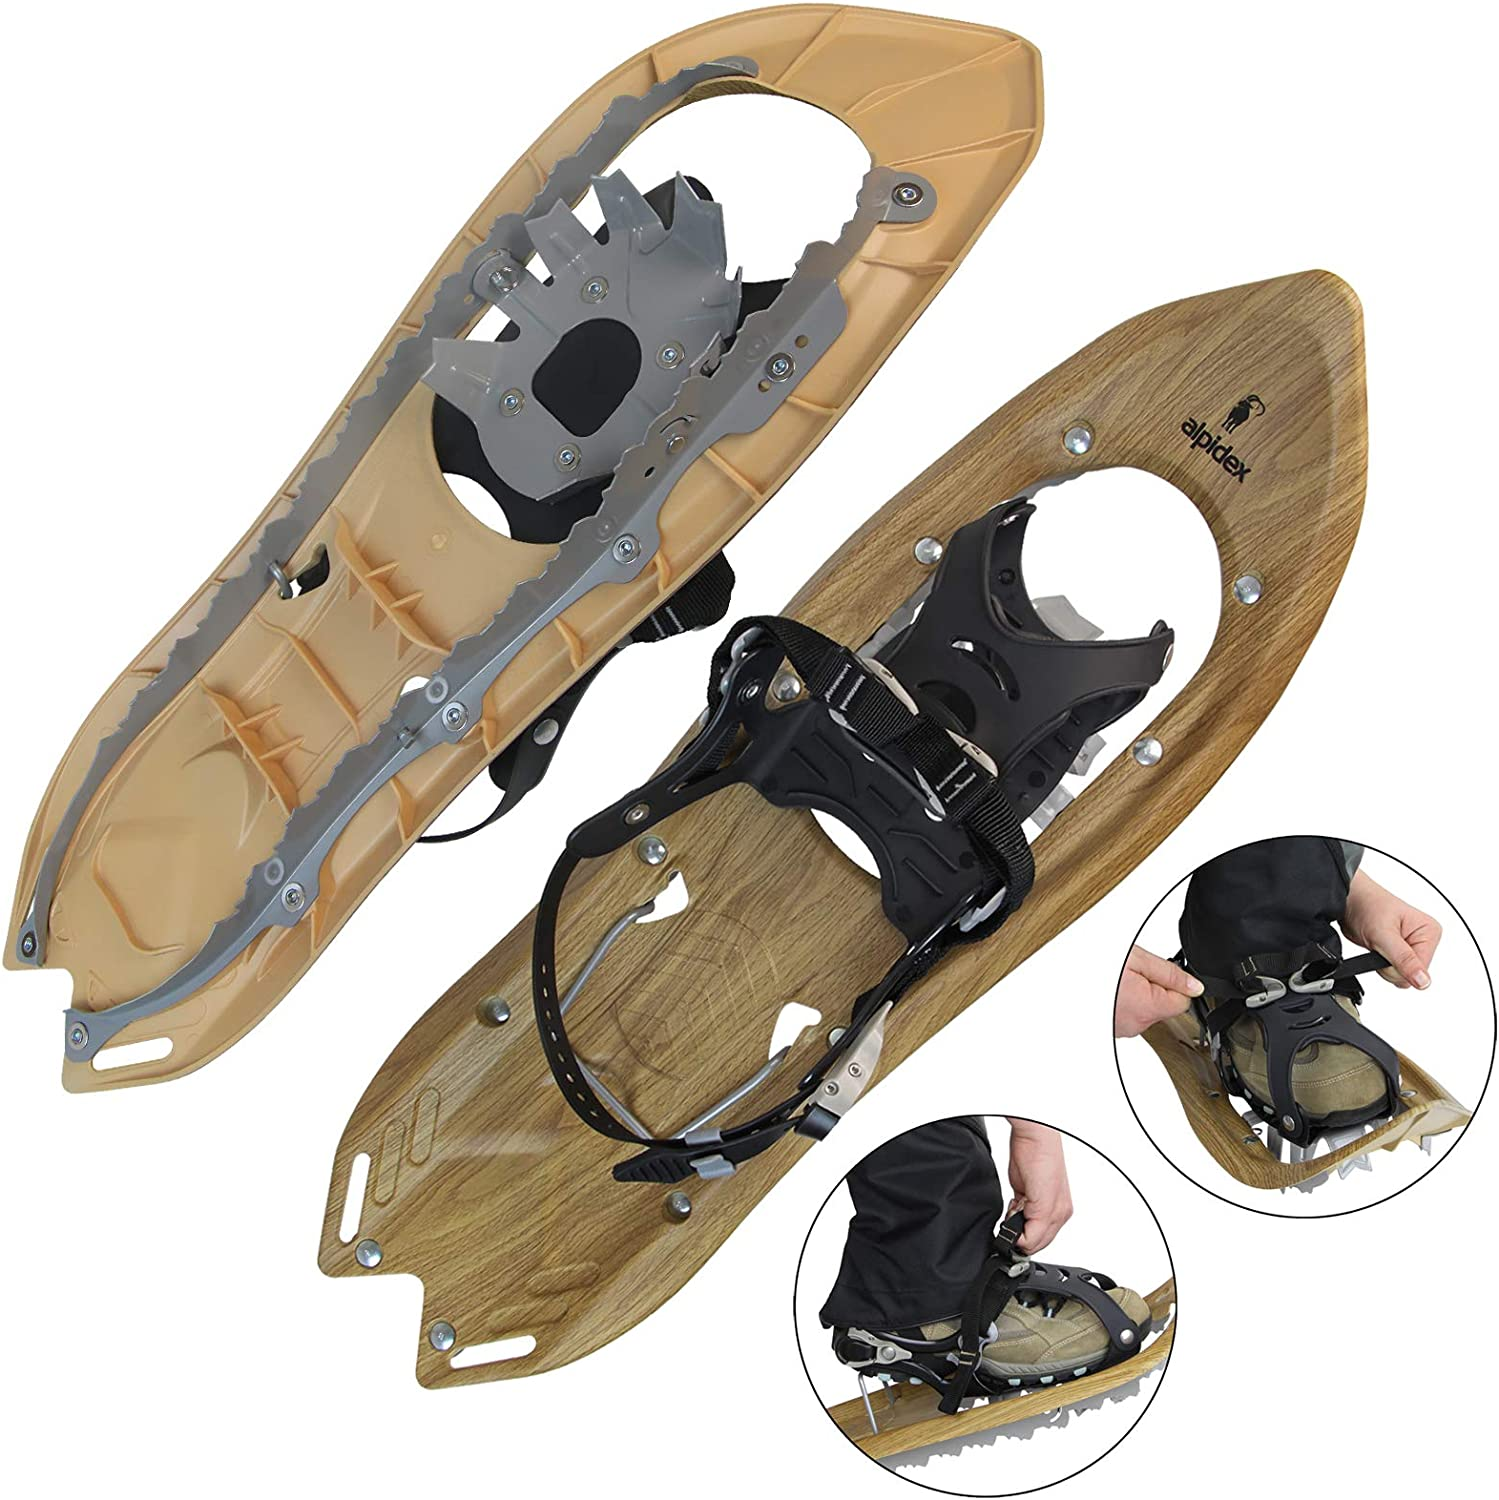 ALPIDEX Wood Look Snowshoes Shoe Sizes 38 to 45 User Weight up to 130 kg Including Carry Bag Optional Carbon Poles